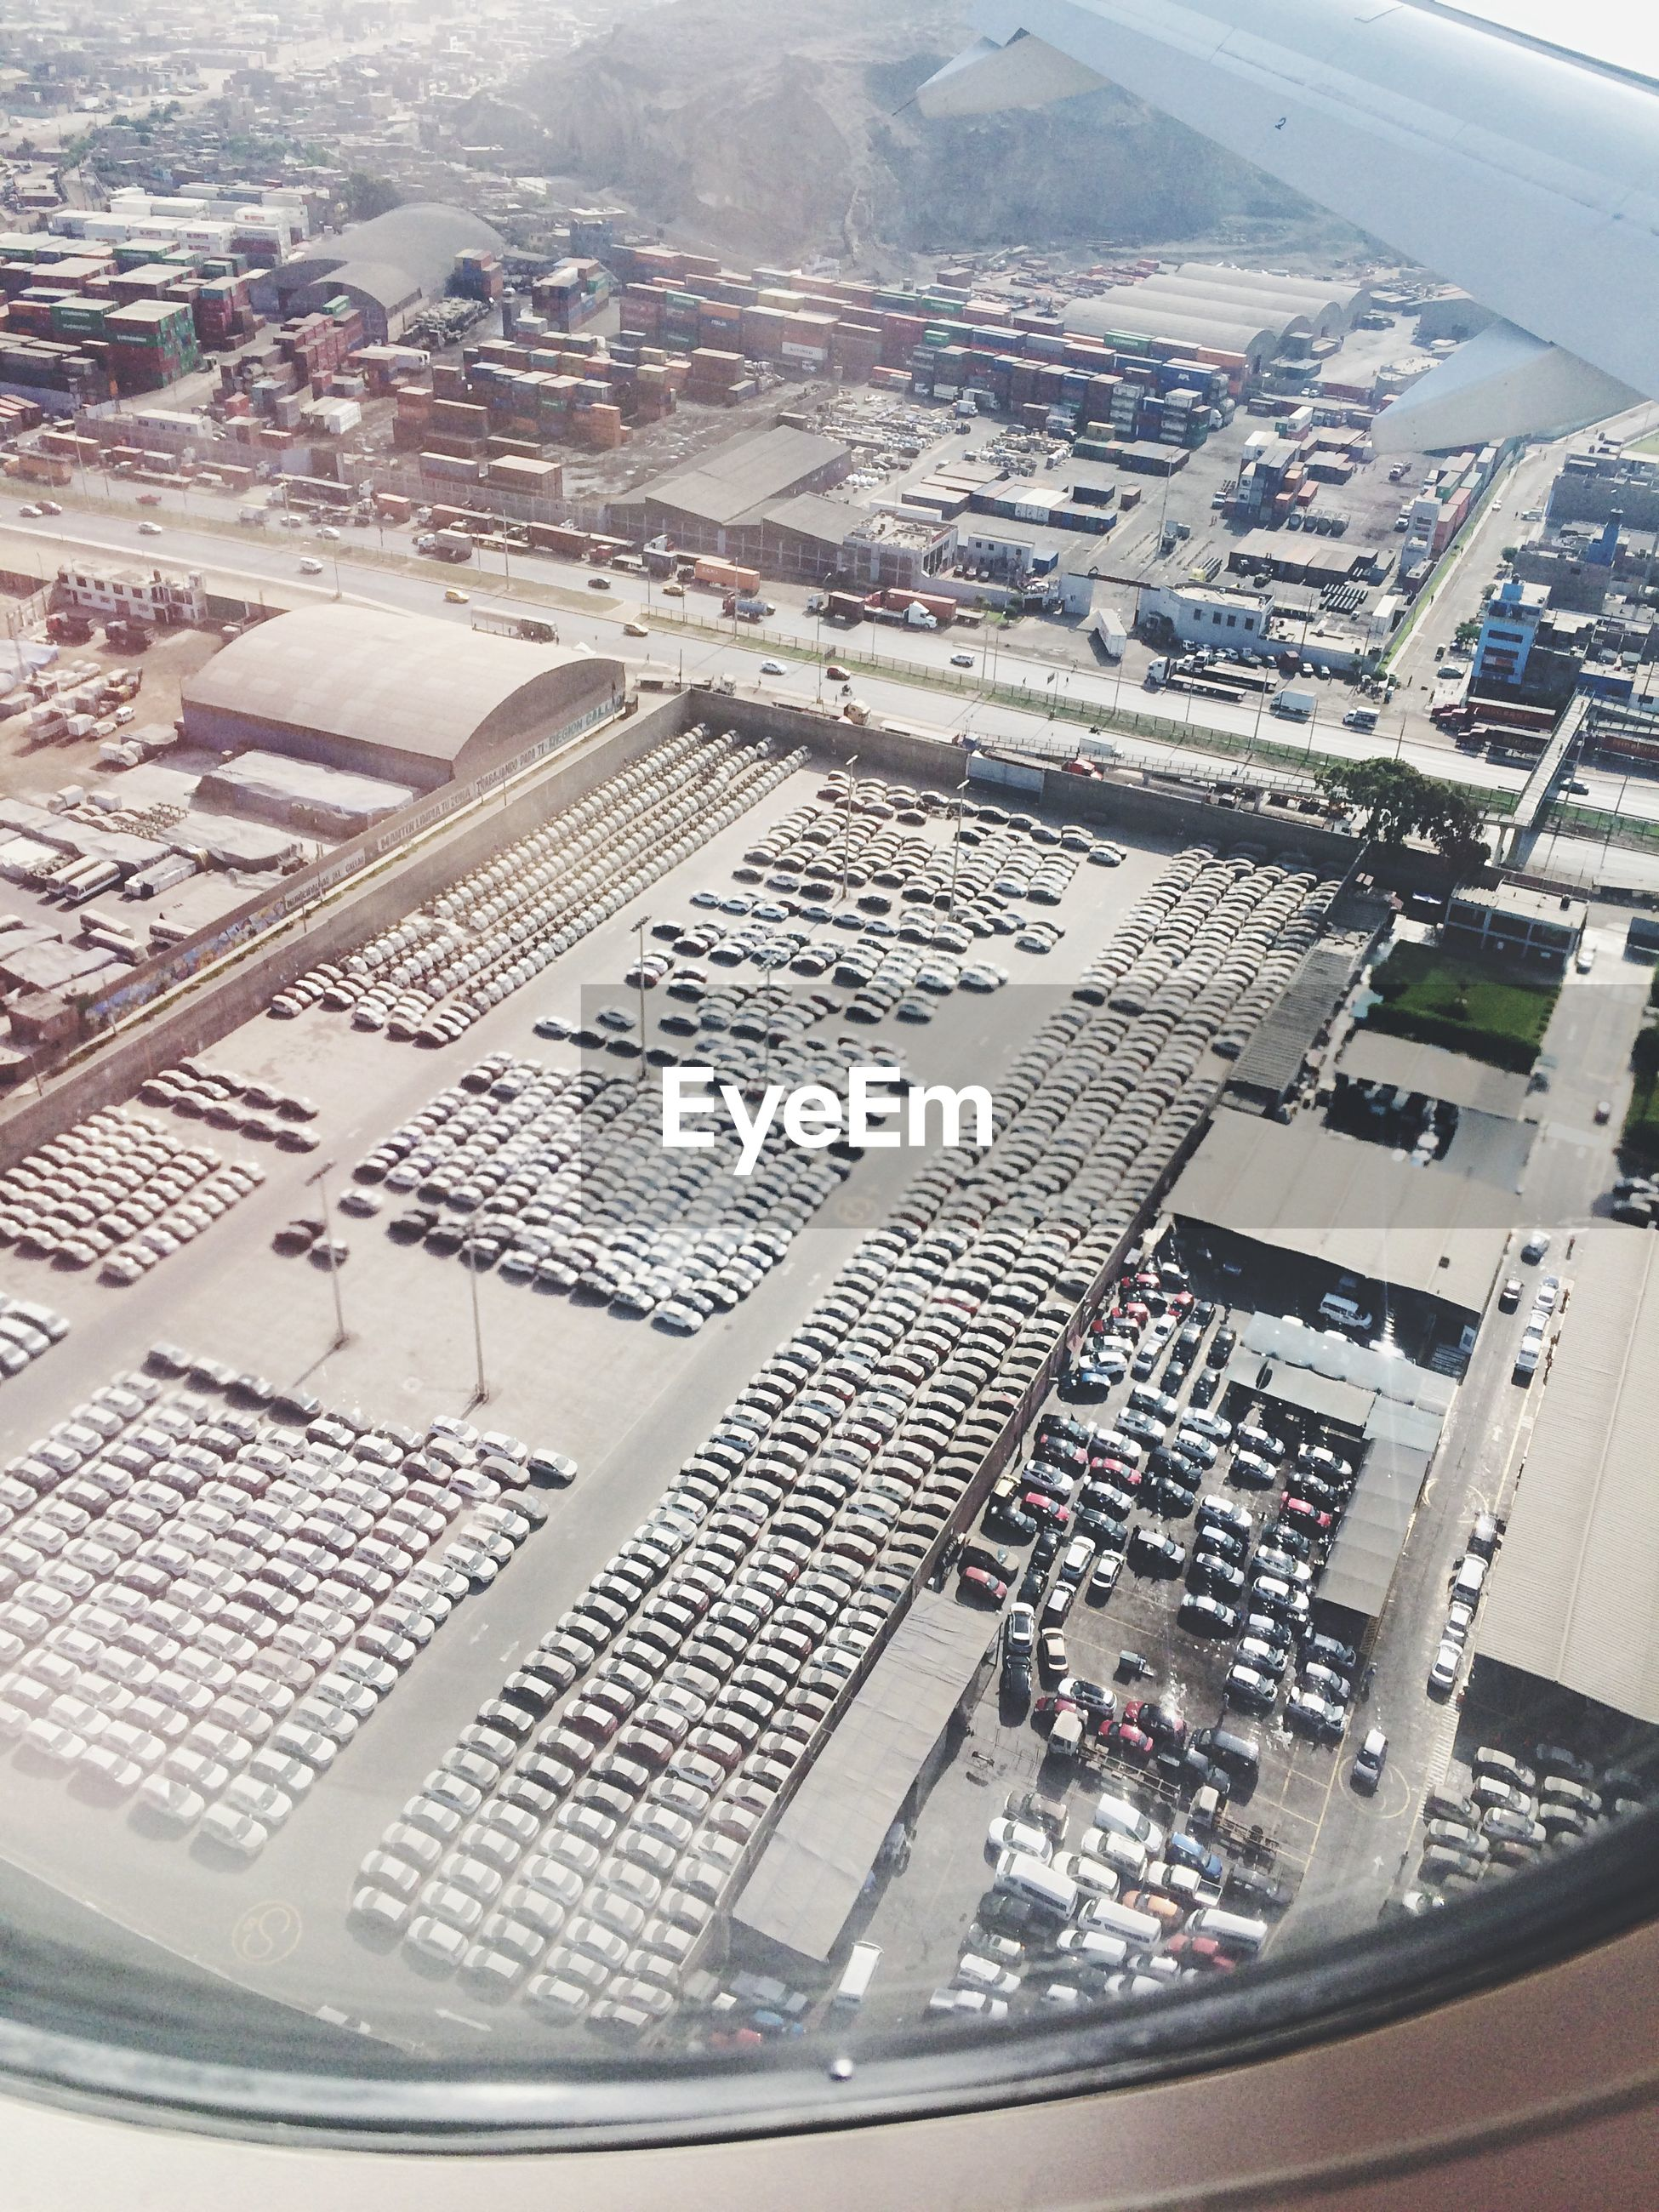 Tilt shift image of cars in parking lot seen through airplane window